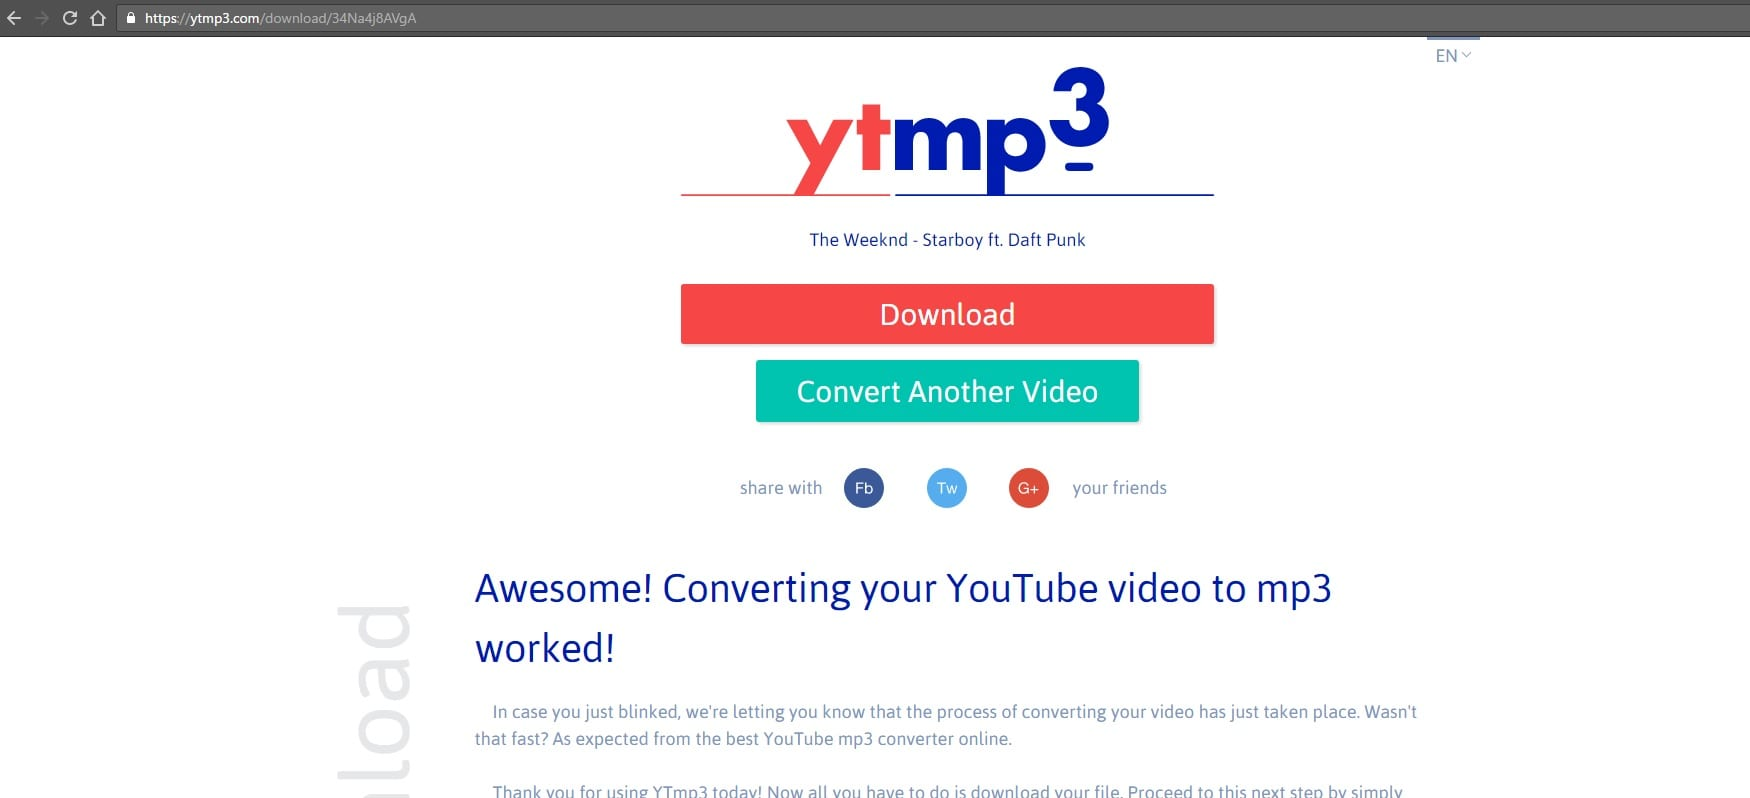 How to download mp3 music files from YouTube for FREE in 5 simple steps